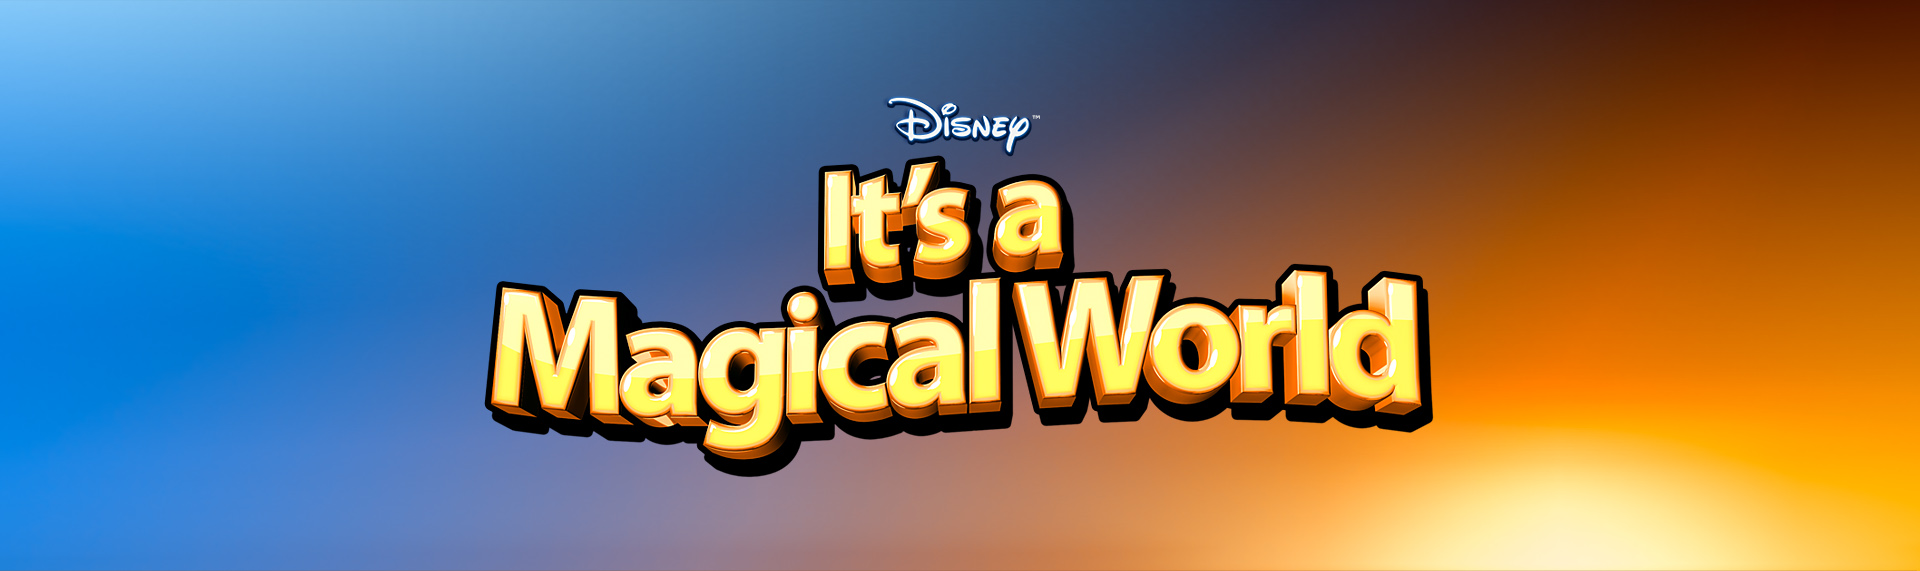 Disney's It's a Magical World  Brand Identity Design, Product Name Creation  A brand identity we created for our Hyperdesk Windows desktop theme - the official Disney's It's a Magical World. As an official licensee (and long time vendor) of The Walt Disney Company, we brought the same dynamics to the style of the logo as we delivered to the desktop themes. The results are a logo that exemplifies the Disney brand - fun, bold and definitely magical.